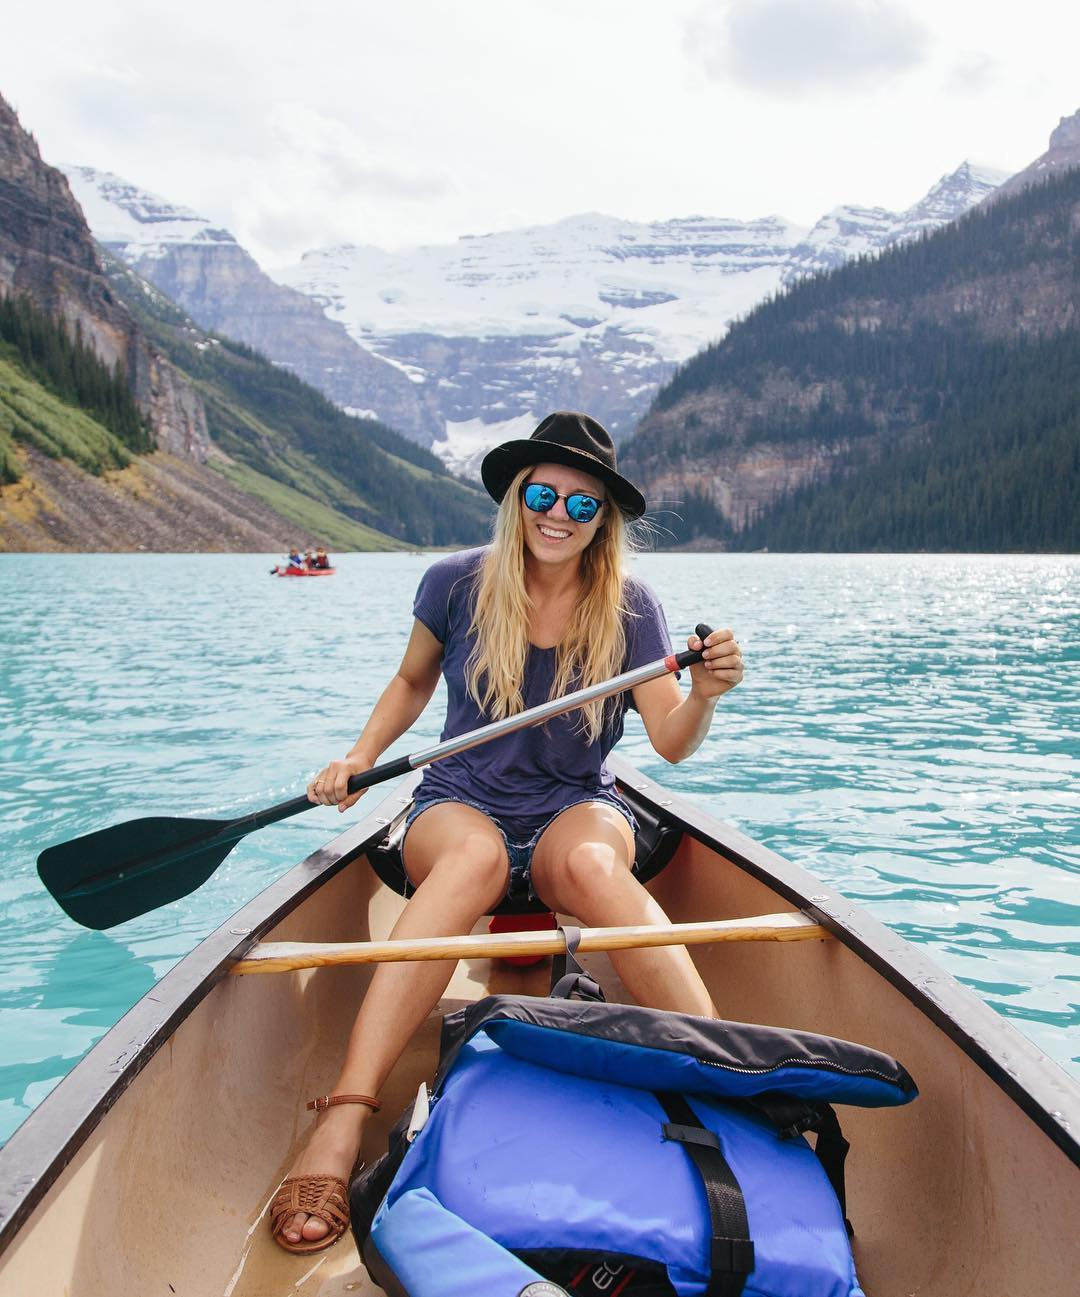 """It was pretty fun to see people's expressions when I explained that I was taking a month long trip from San Diego all the way to Banff, Canada."" @kara.donovan See more of Kara's beautifully orchestrated trip entitled, North West Wonder on the blog +..."